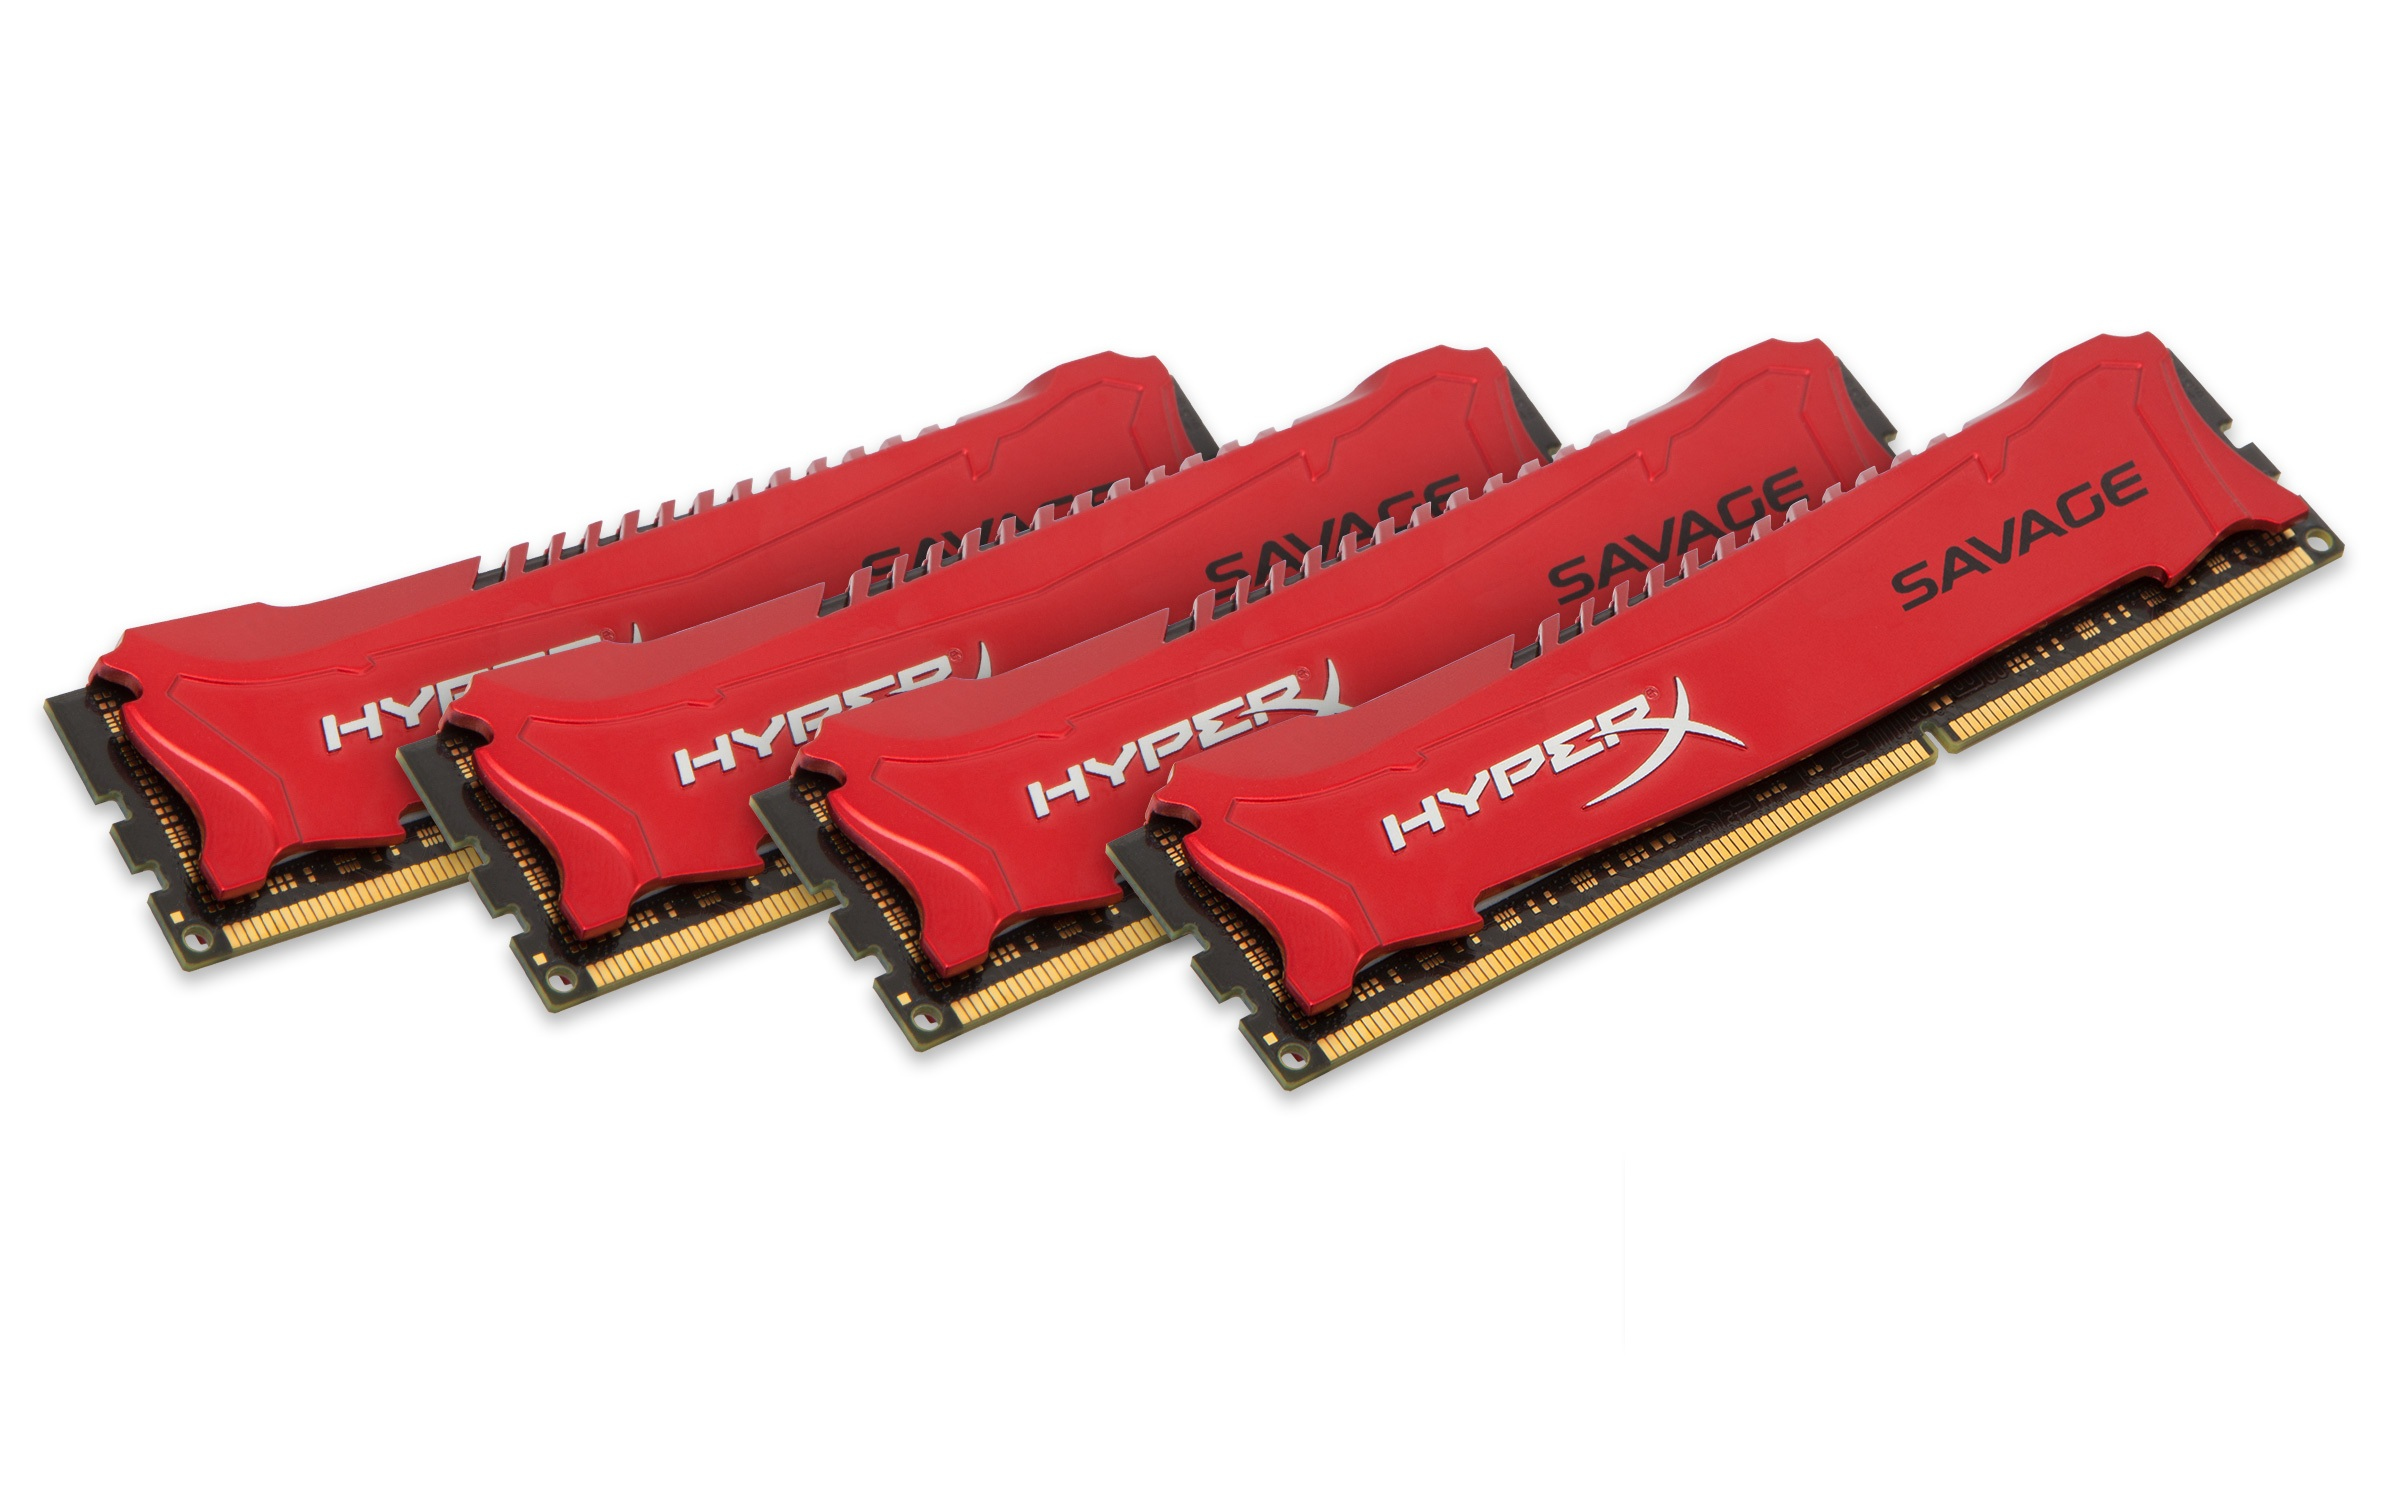 price of 32GB 1600MHz DDR3 CL9 DIMM (Kit of 4) XMP HyperX Savage Red on ShopHub | ecommerce, price check, start a business, sell online